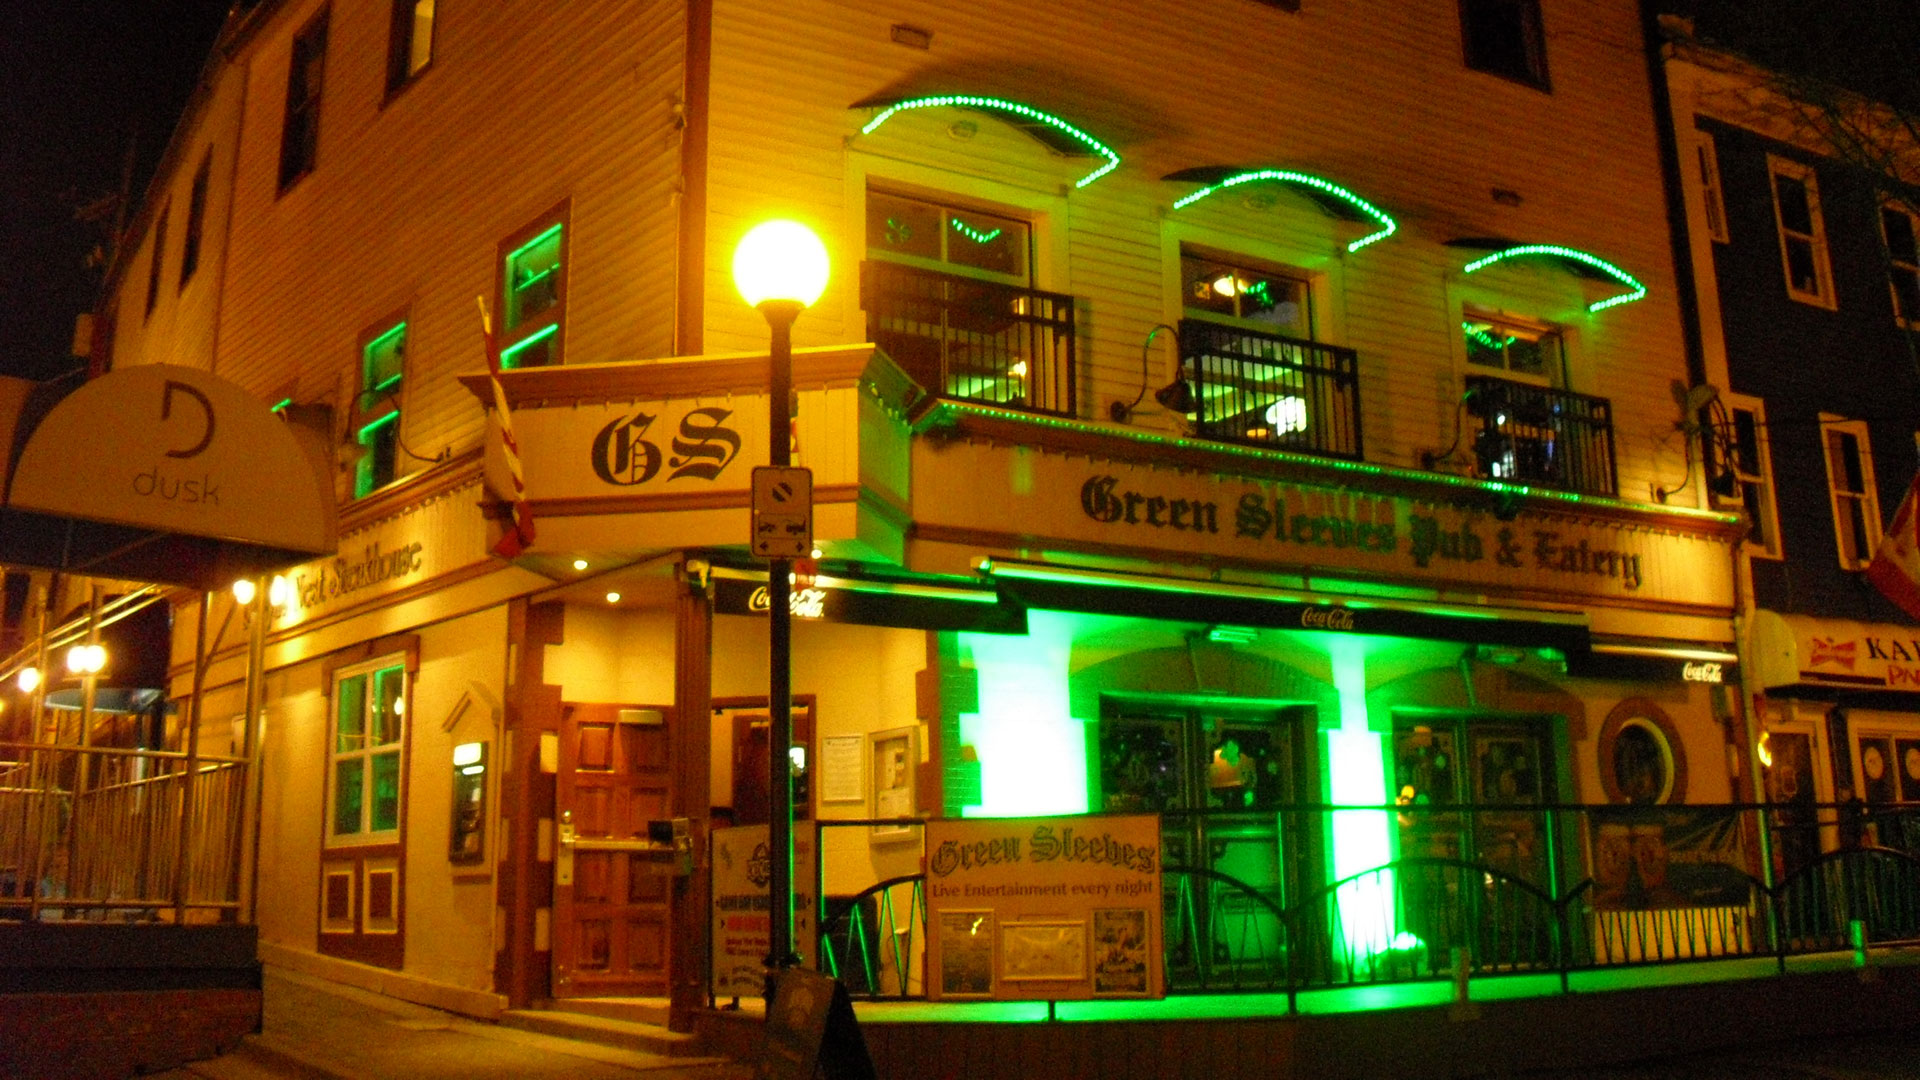 Green Sleeves Pub & Eatery